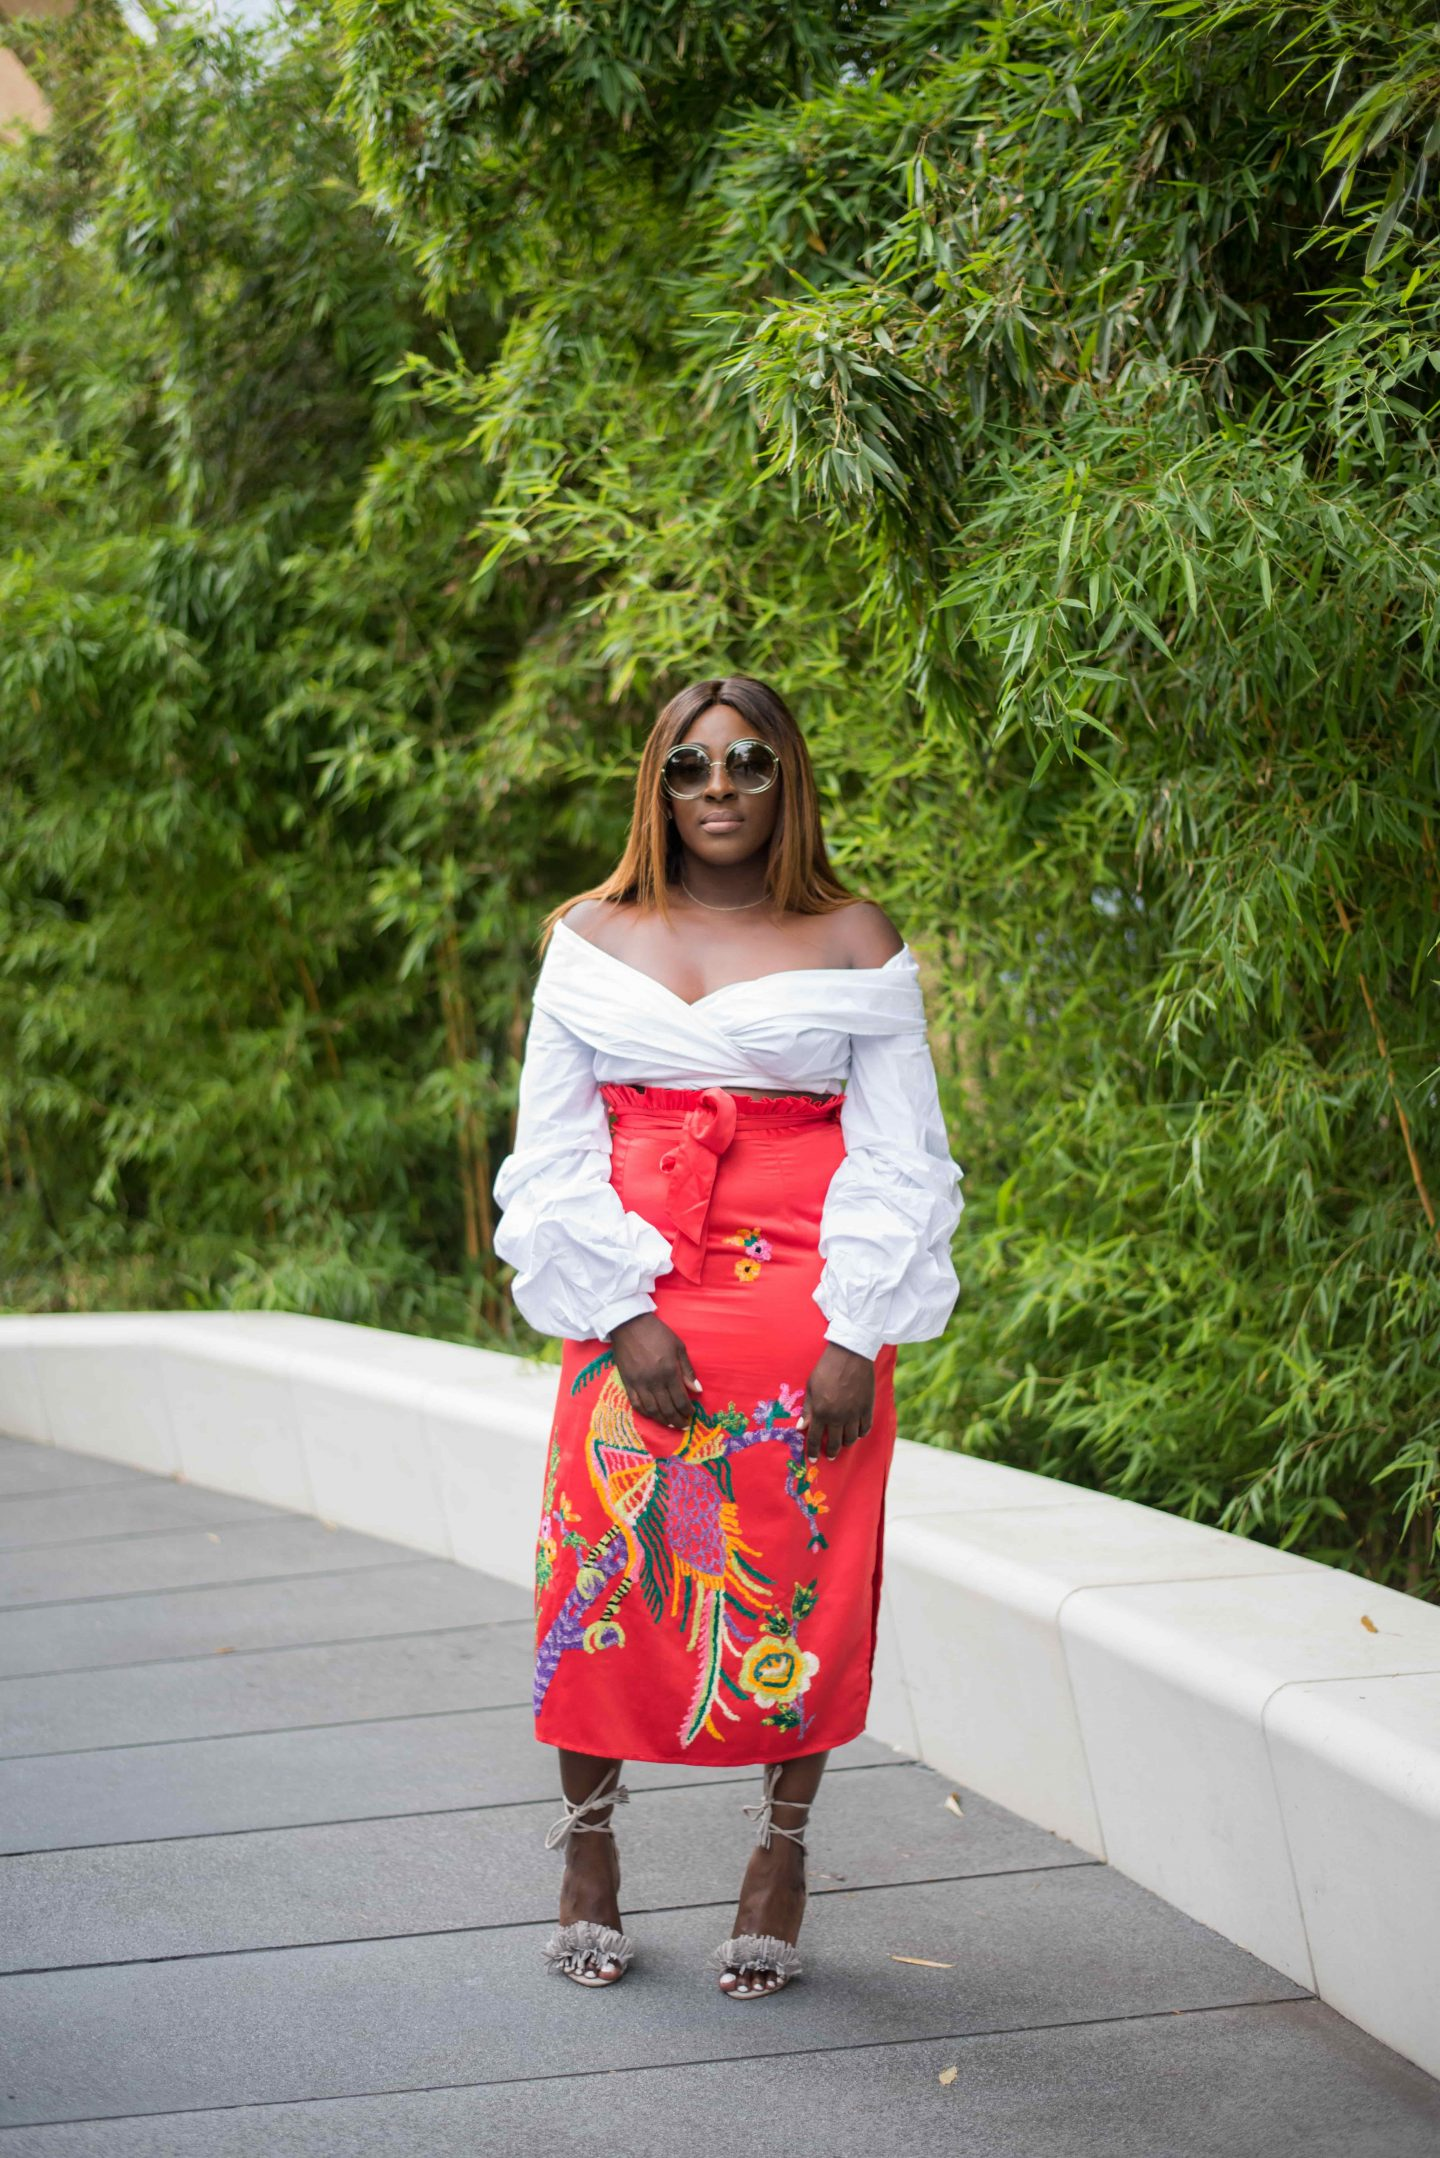 Statement Skirts & Tropical Roof Gardens 2 - asos white top - asos embroidery skirt - chloe sunglasses - Style and the Sass